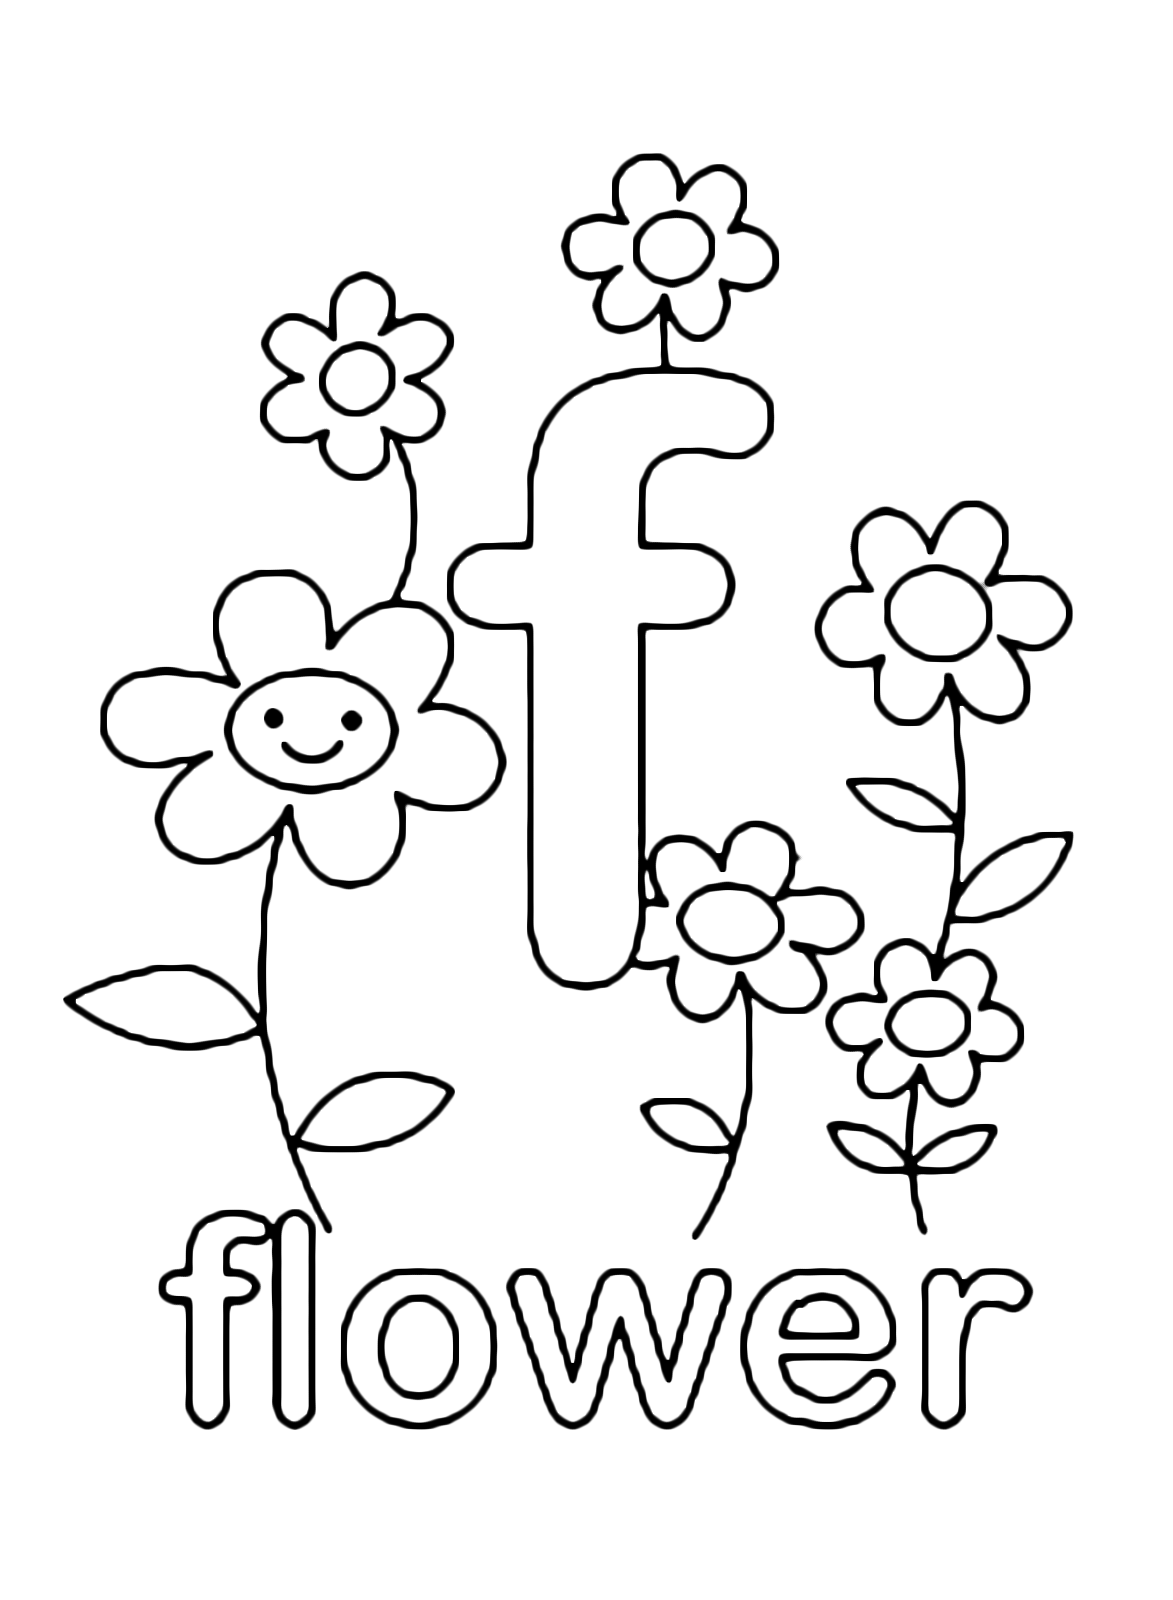 f is for flower the learning site is for flower f